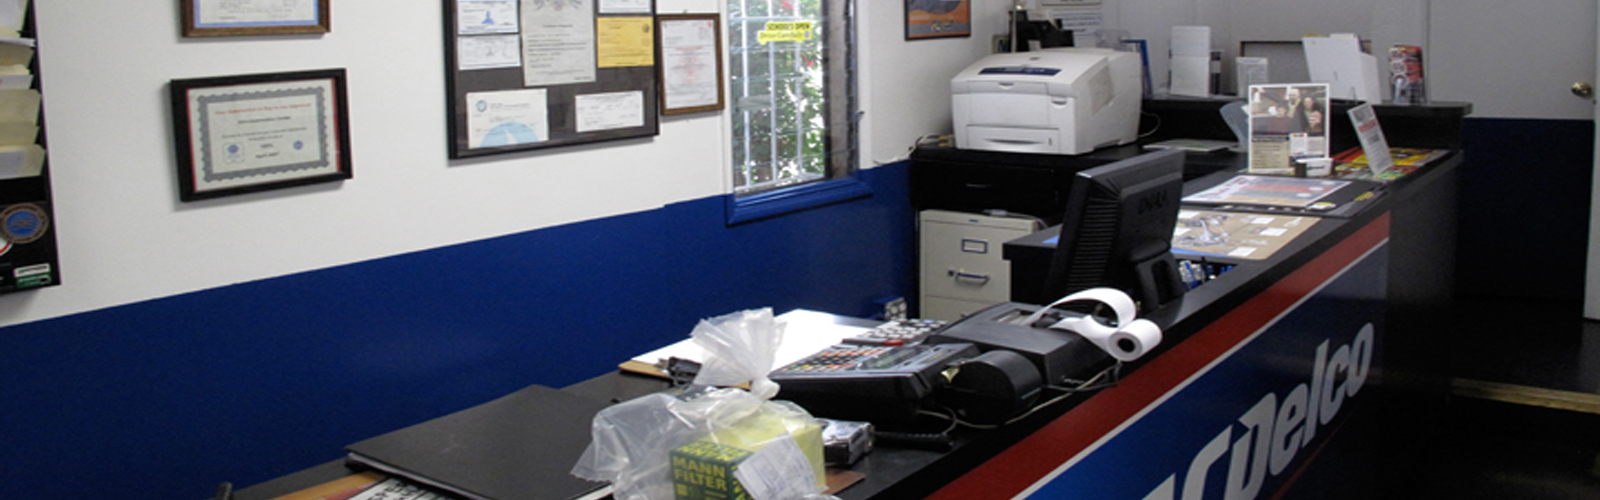 Ed's Automotive Center | Front Desk